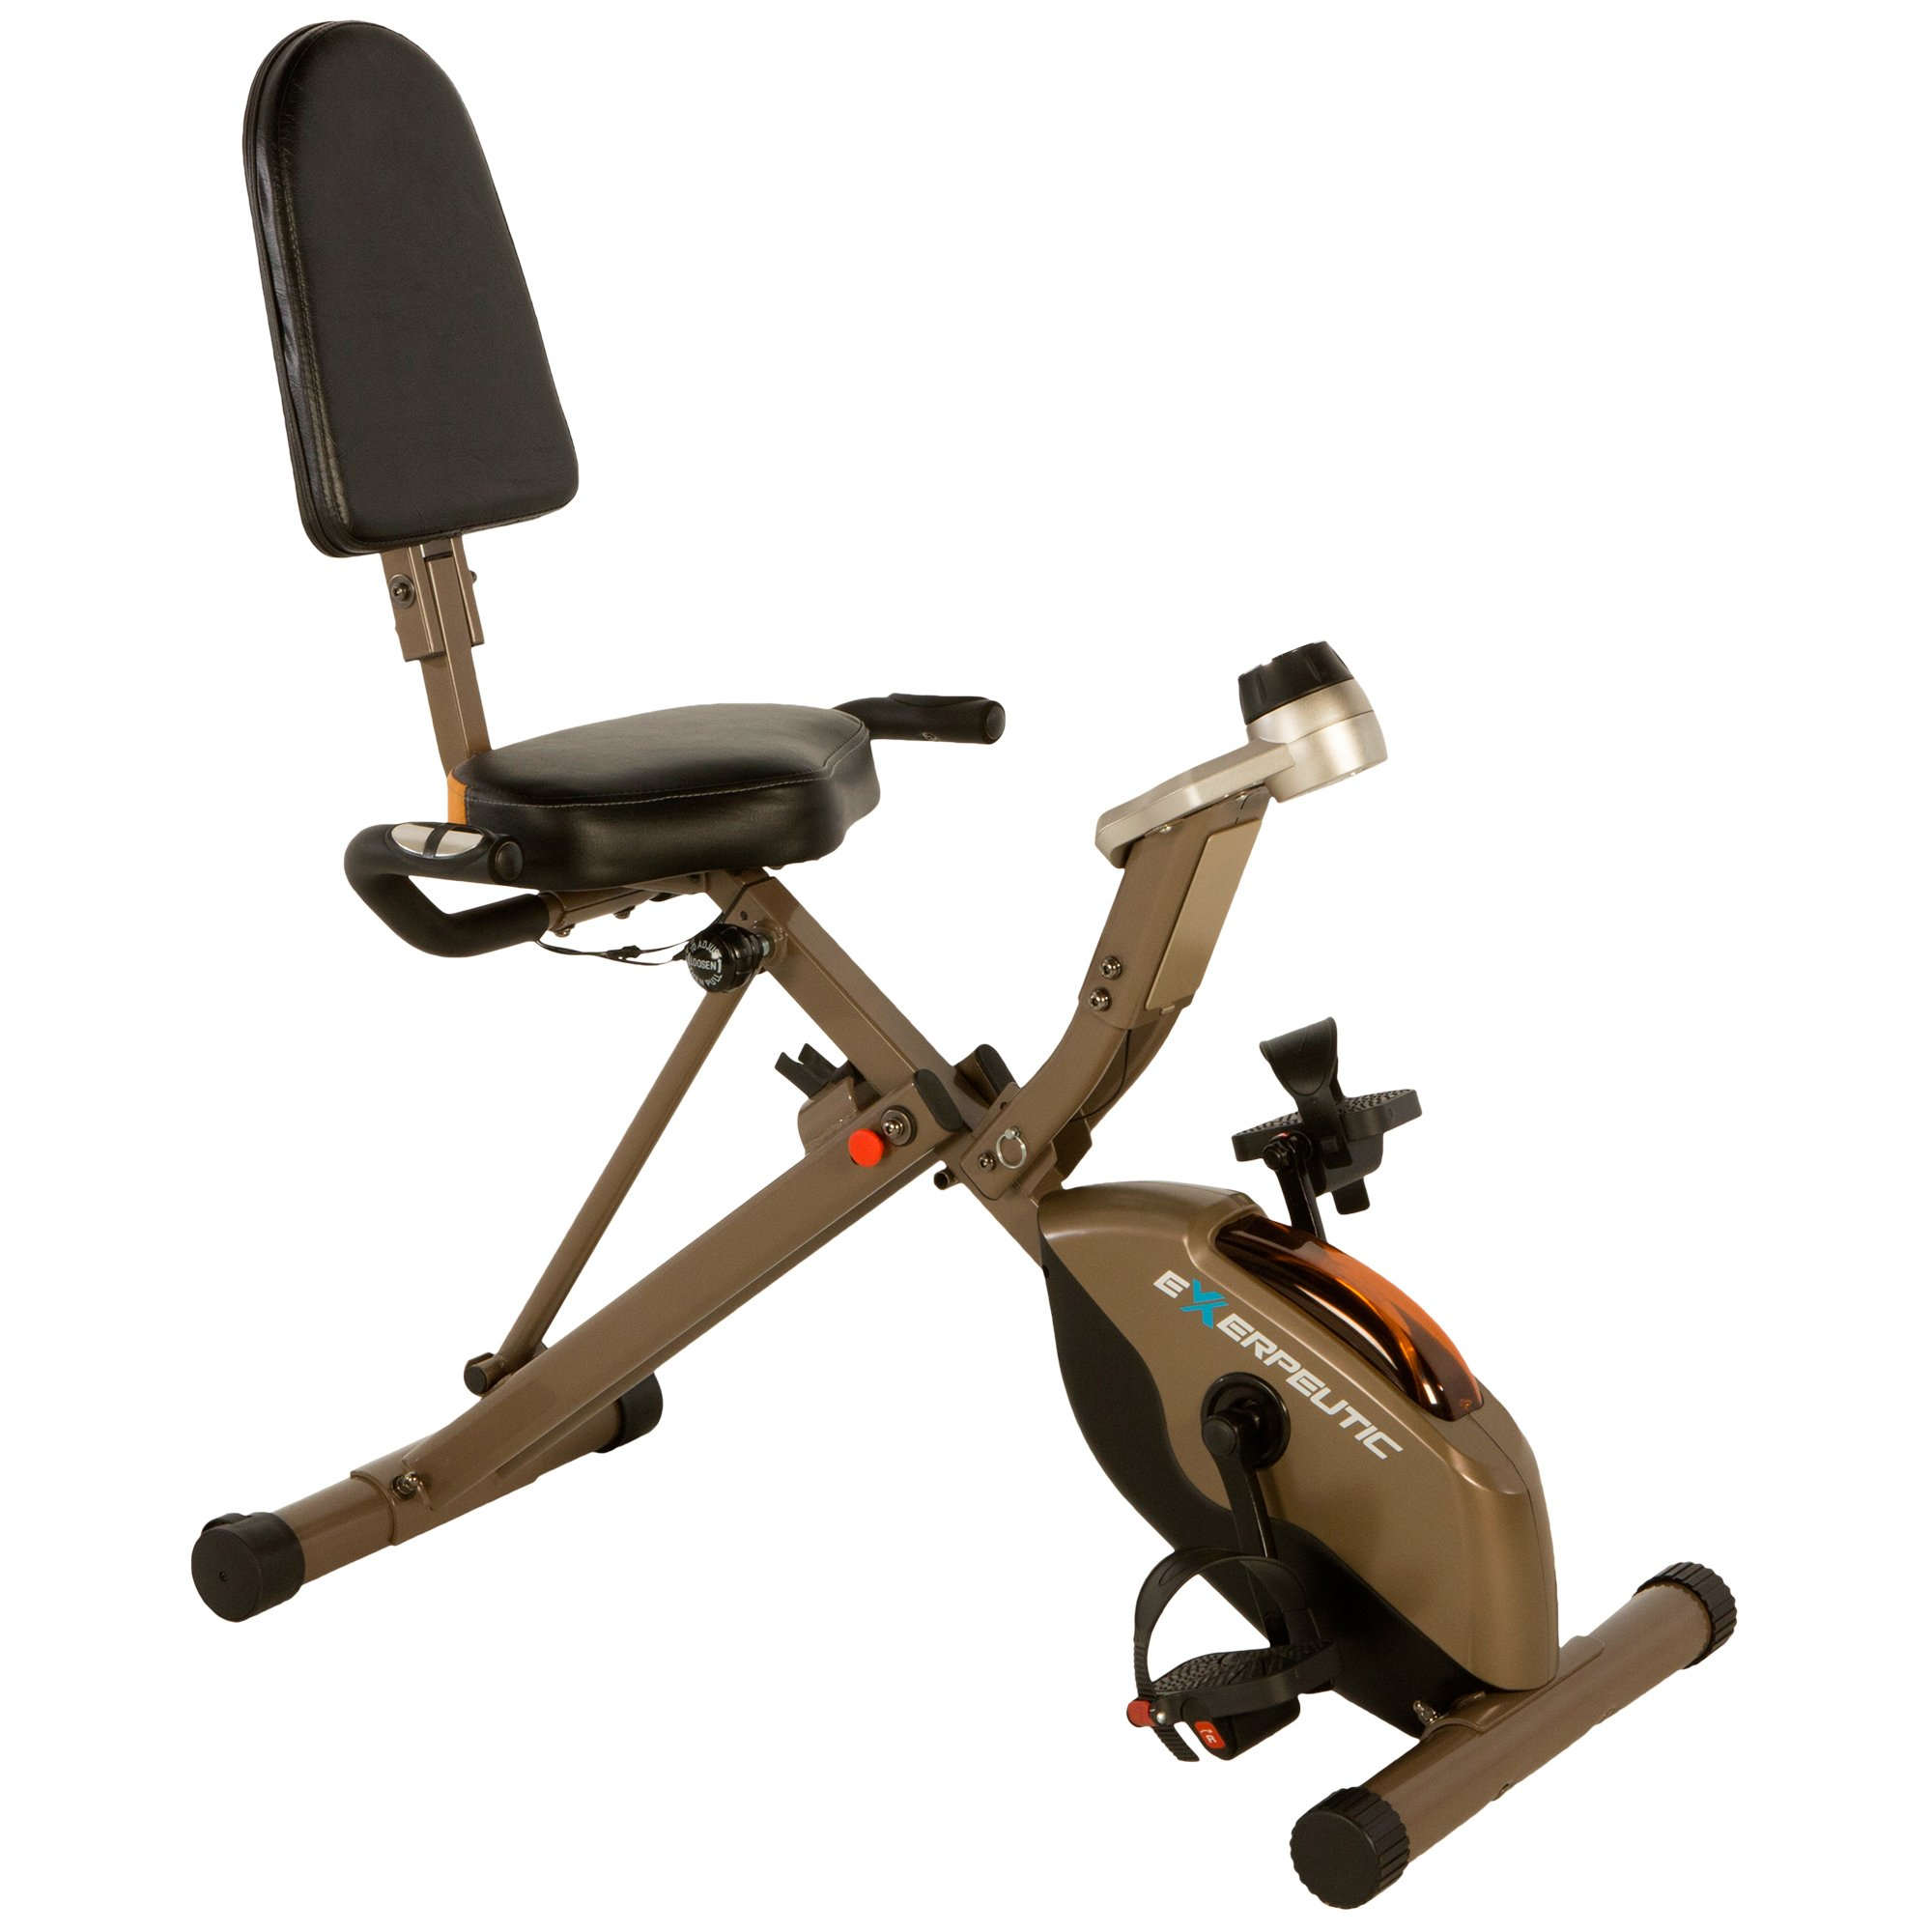 Exerpeutic Gold 525XLR Folding Recumbent Exercise Bike, 400 lbs by Exerpeutic (Image #2)